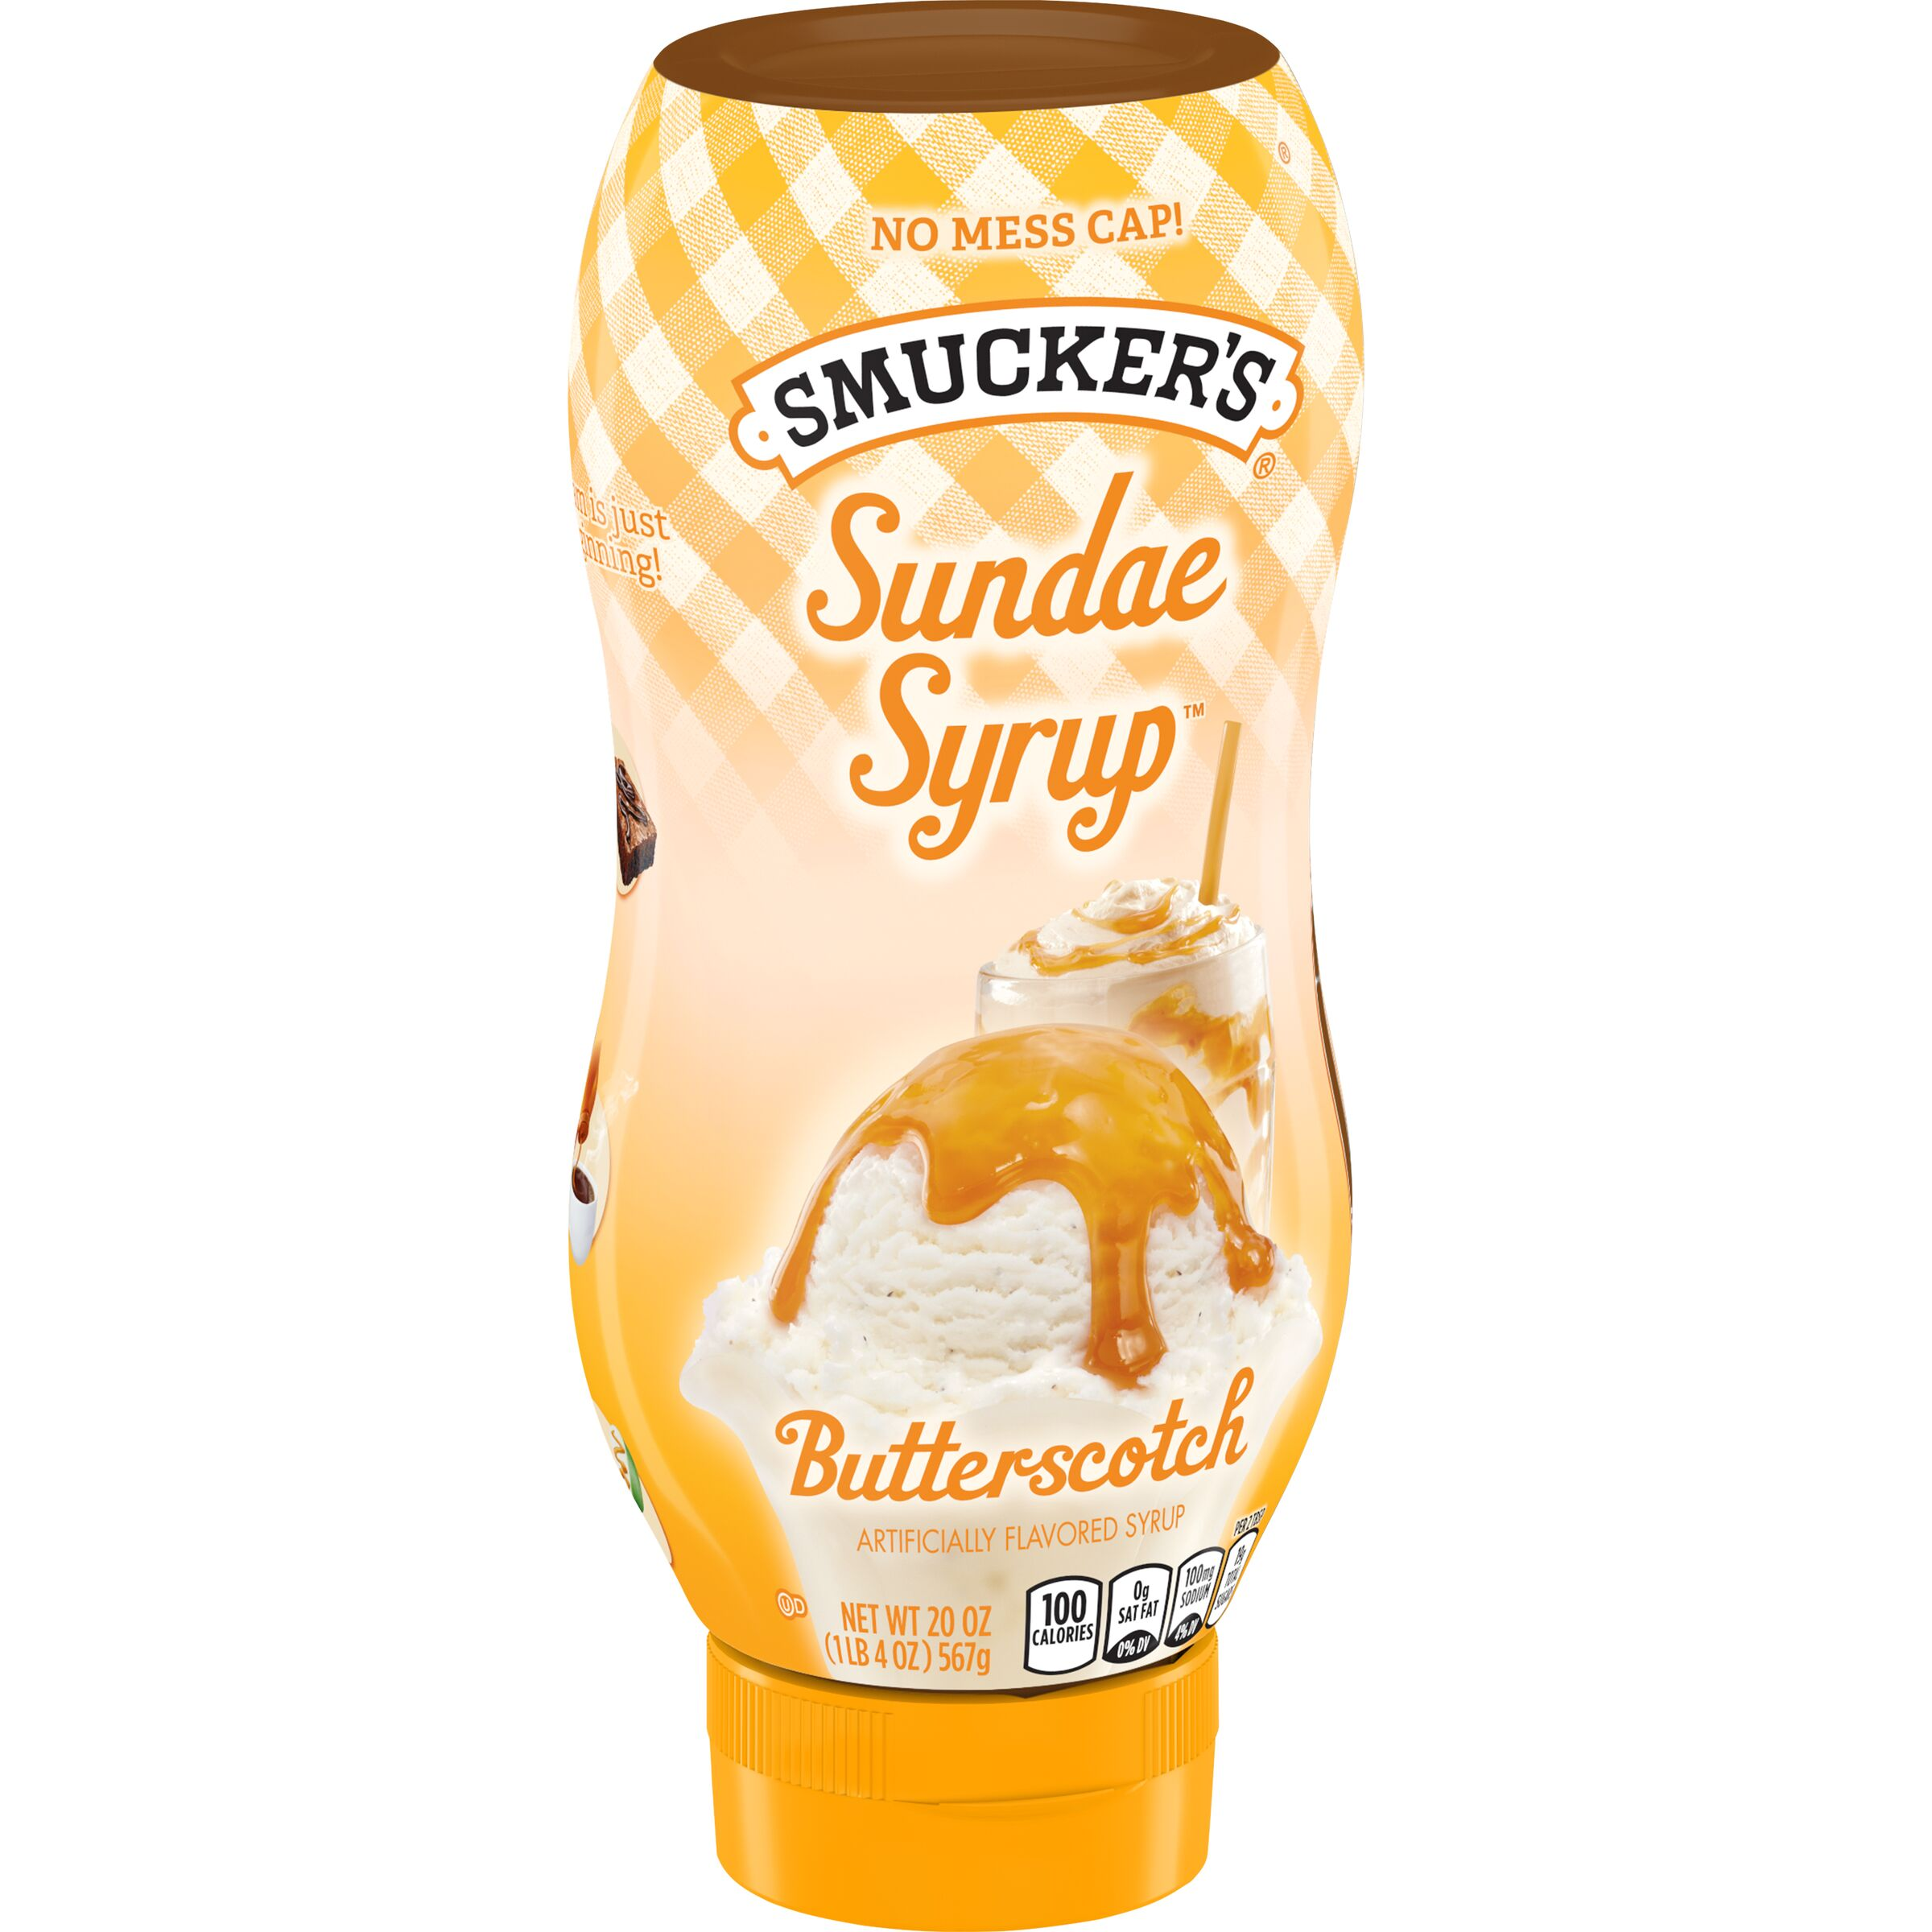 Smucker's Sundae Syrup - Butterscotch